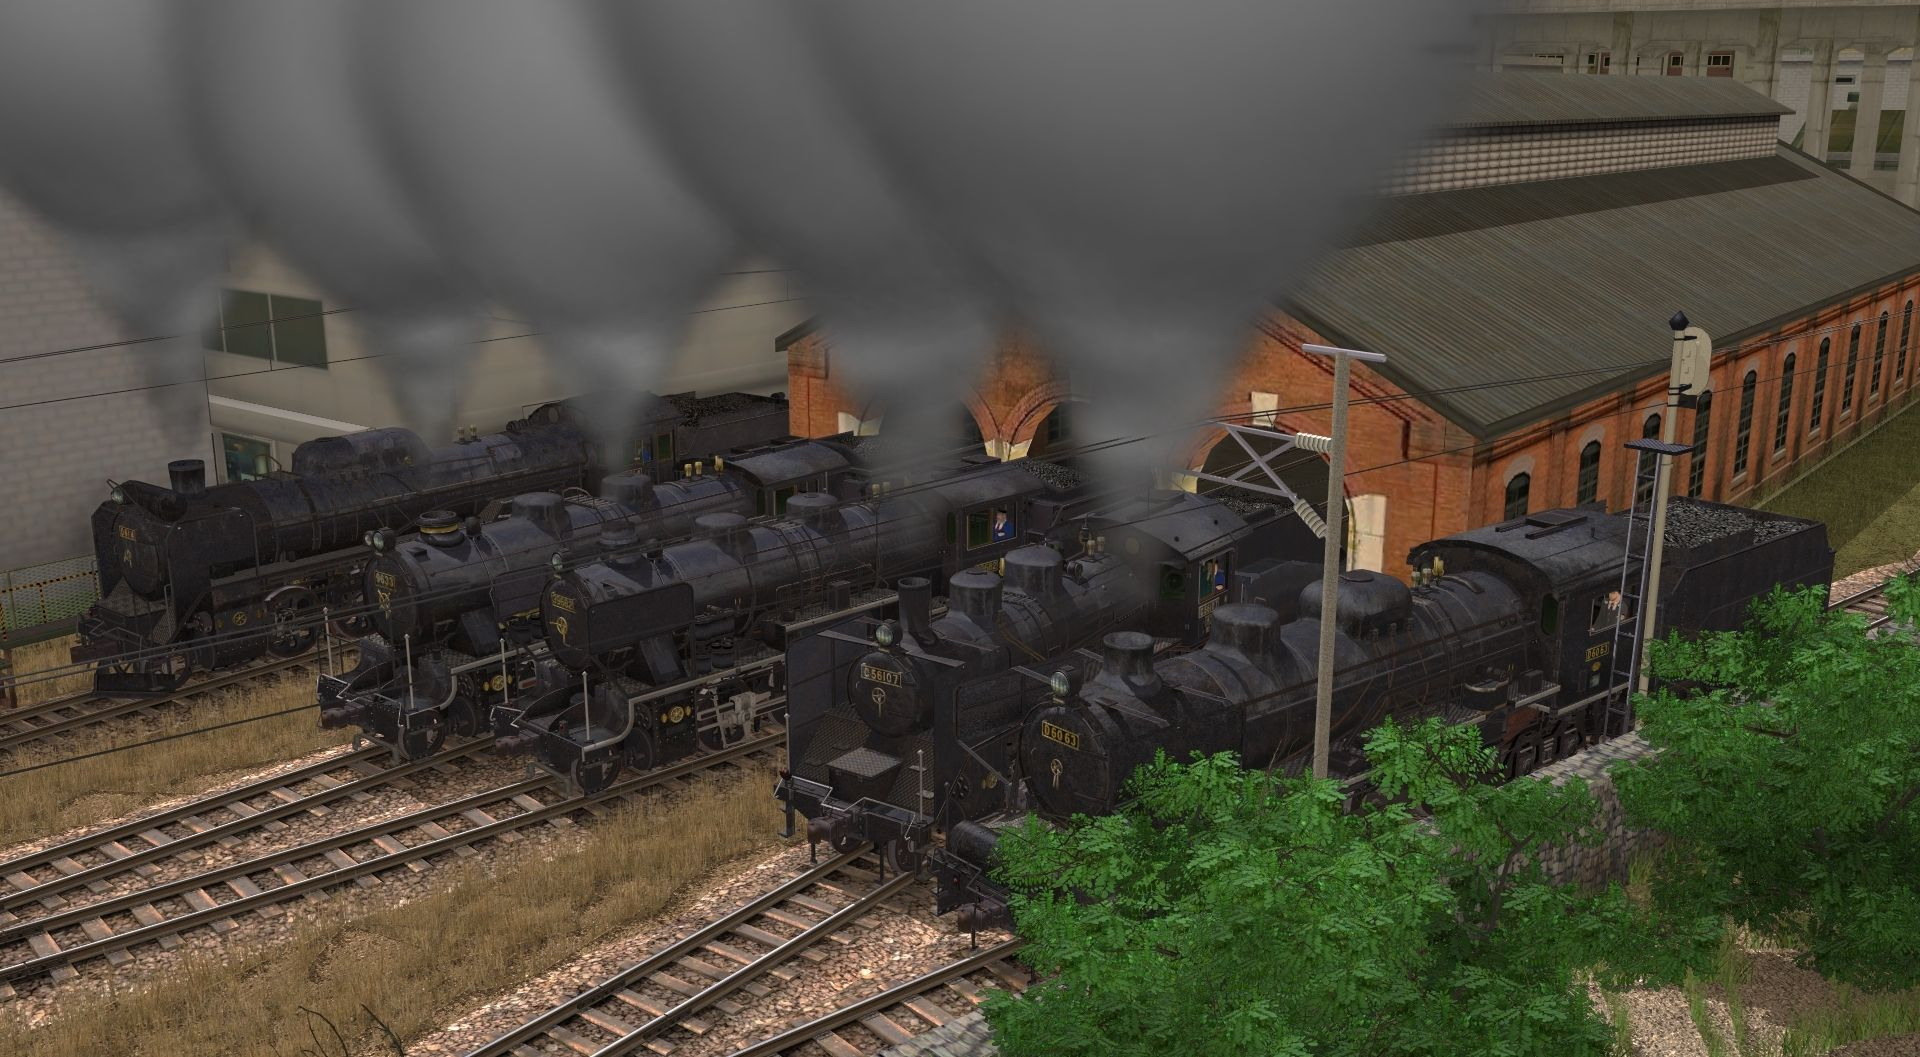 New to Trainz, would like to find Japanese Railroad / Japanese trains?